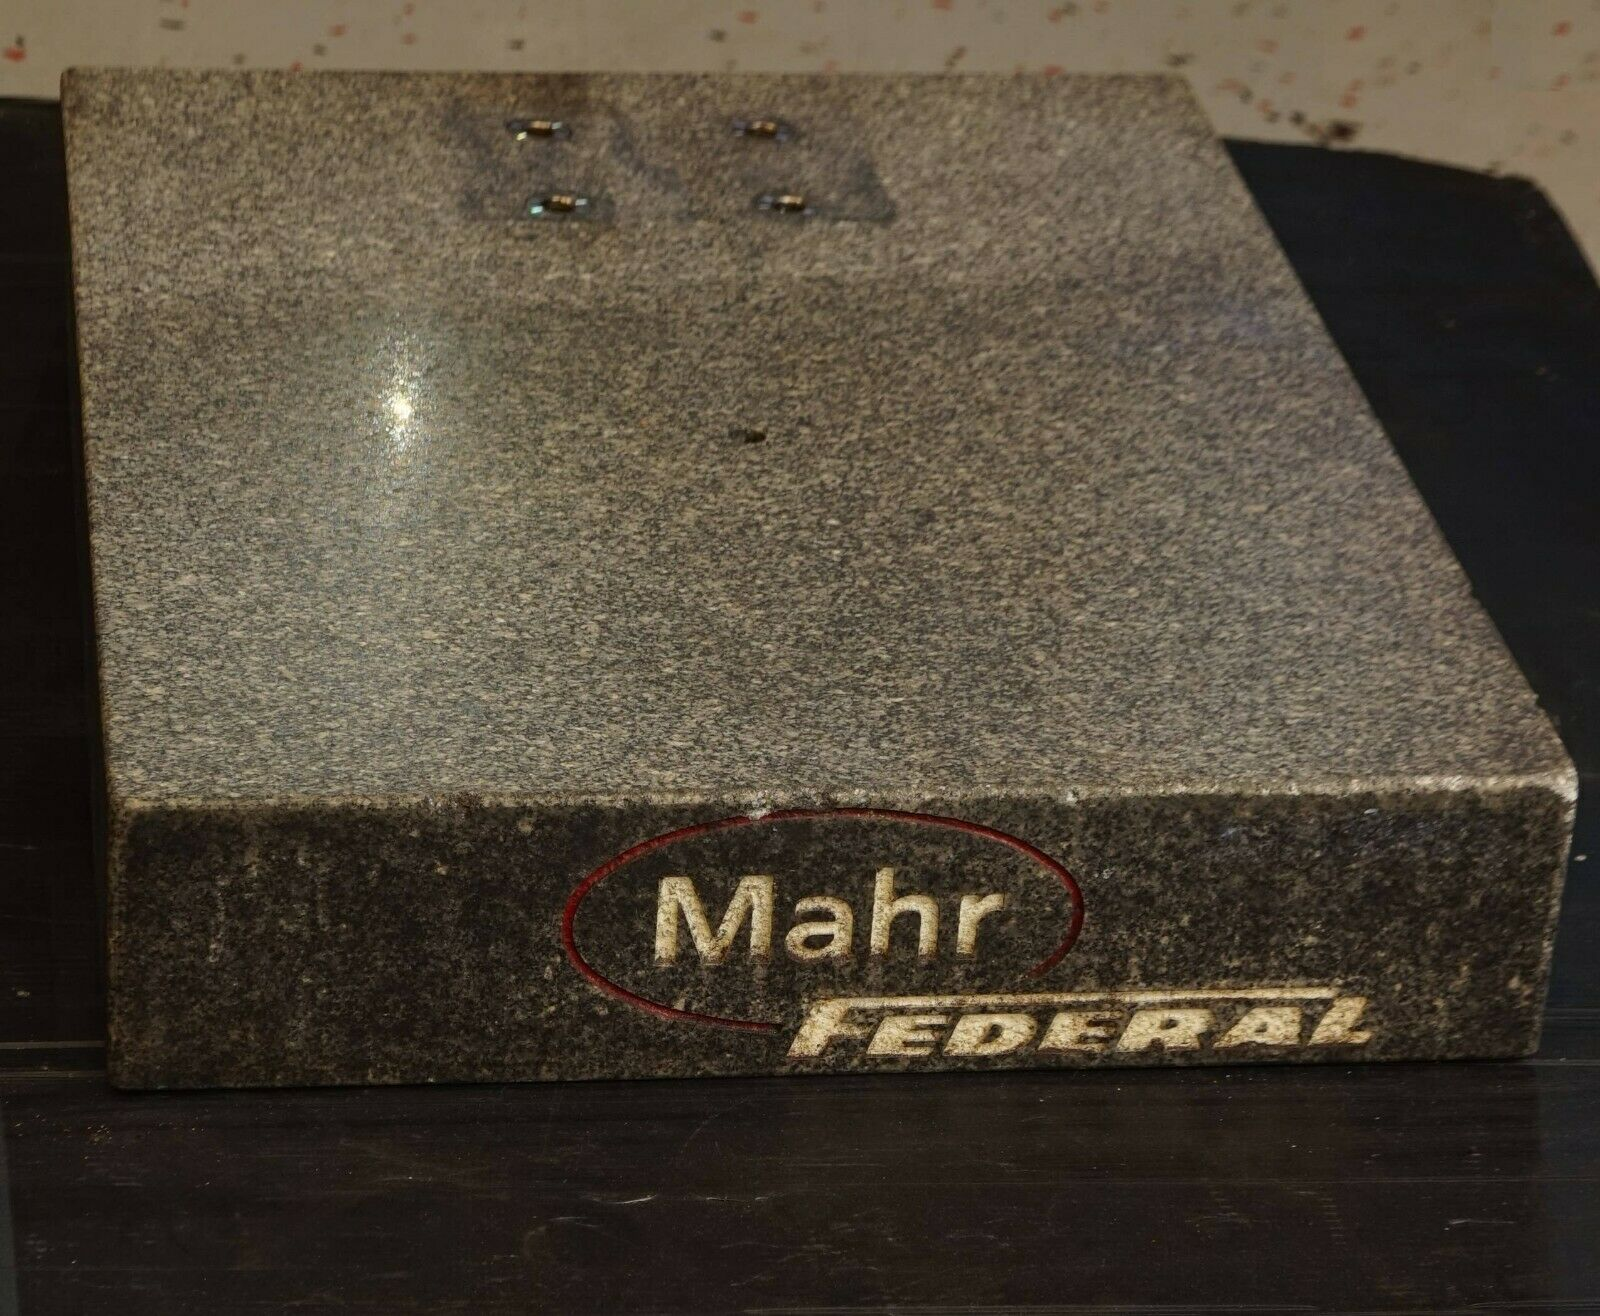 MAHR Federal Granite Surface Plate